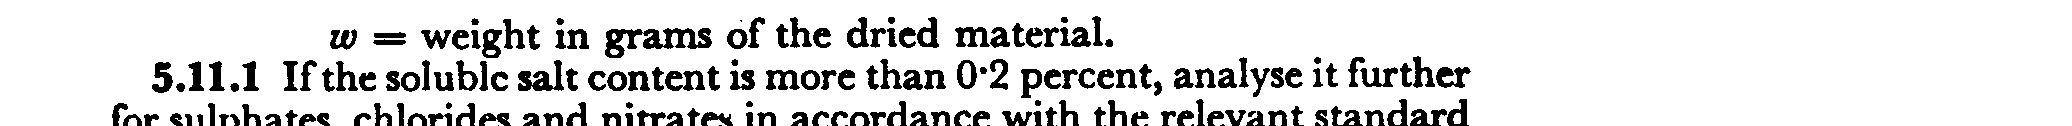 w = weight in grams of the dried material. 5.11.1 If the soluble salt content is more than 0.